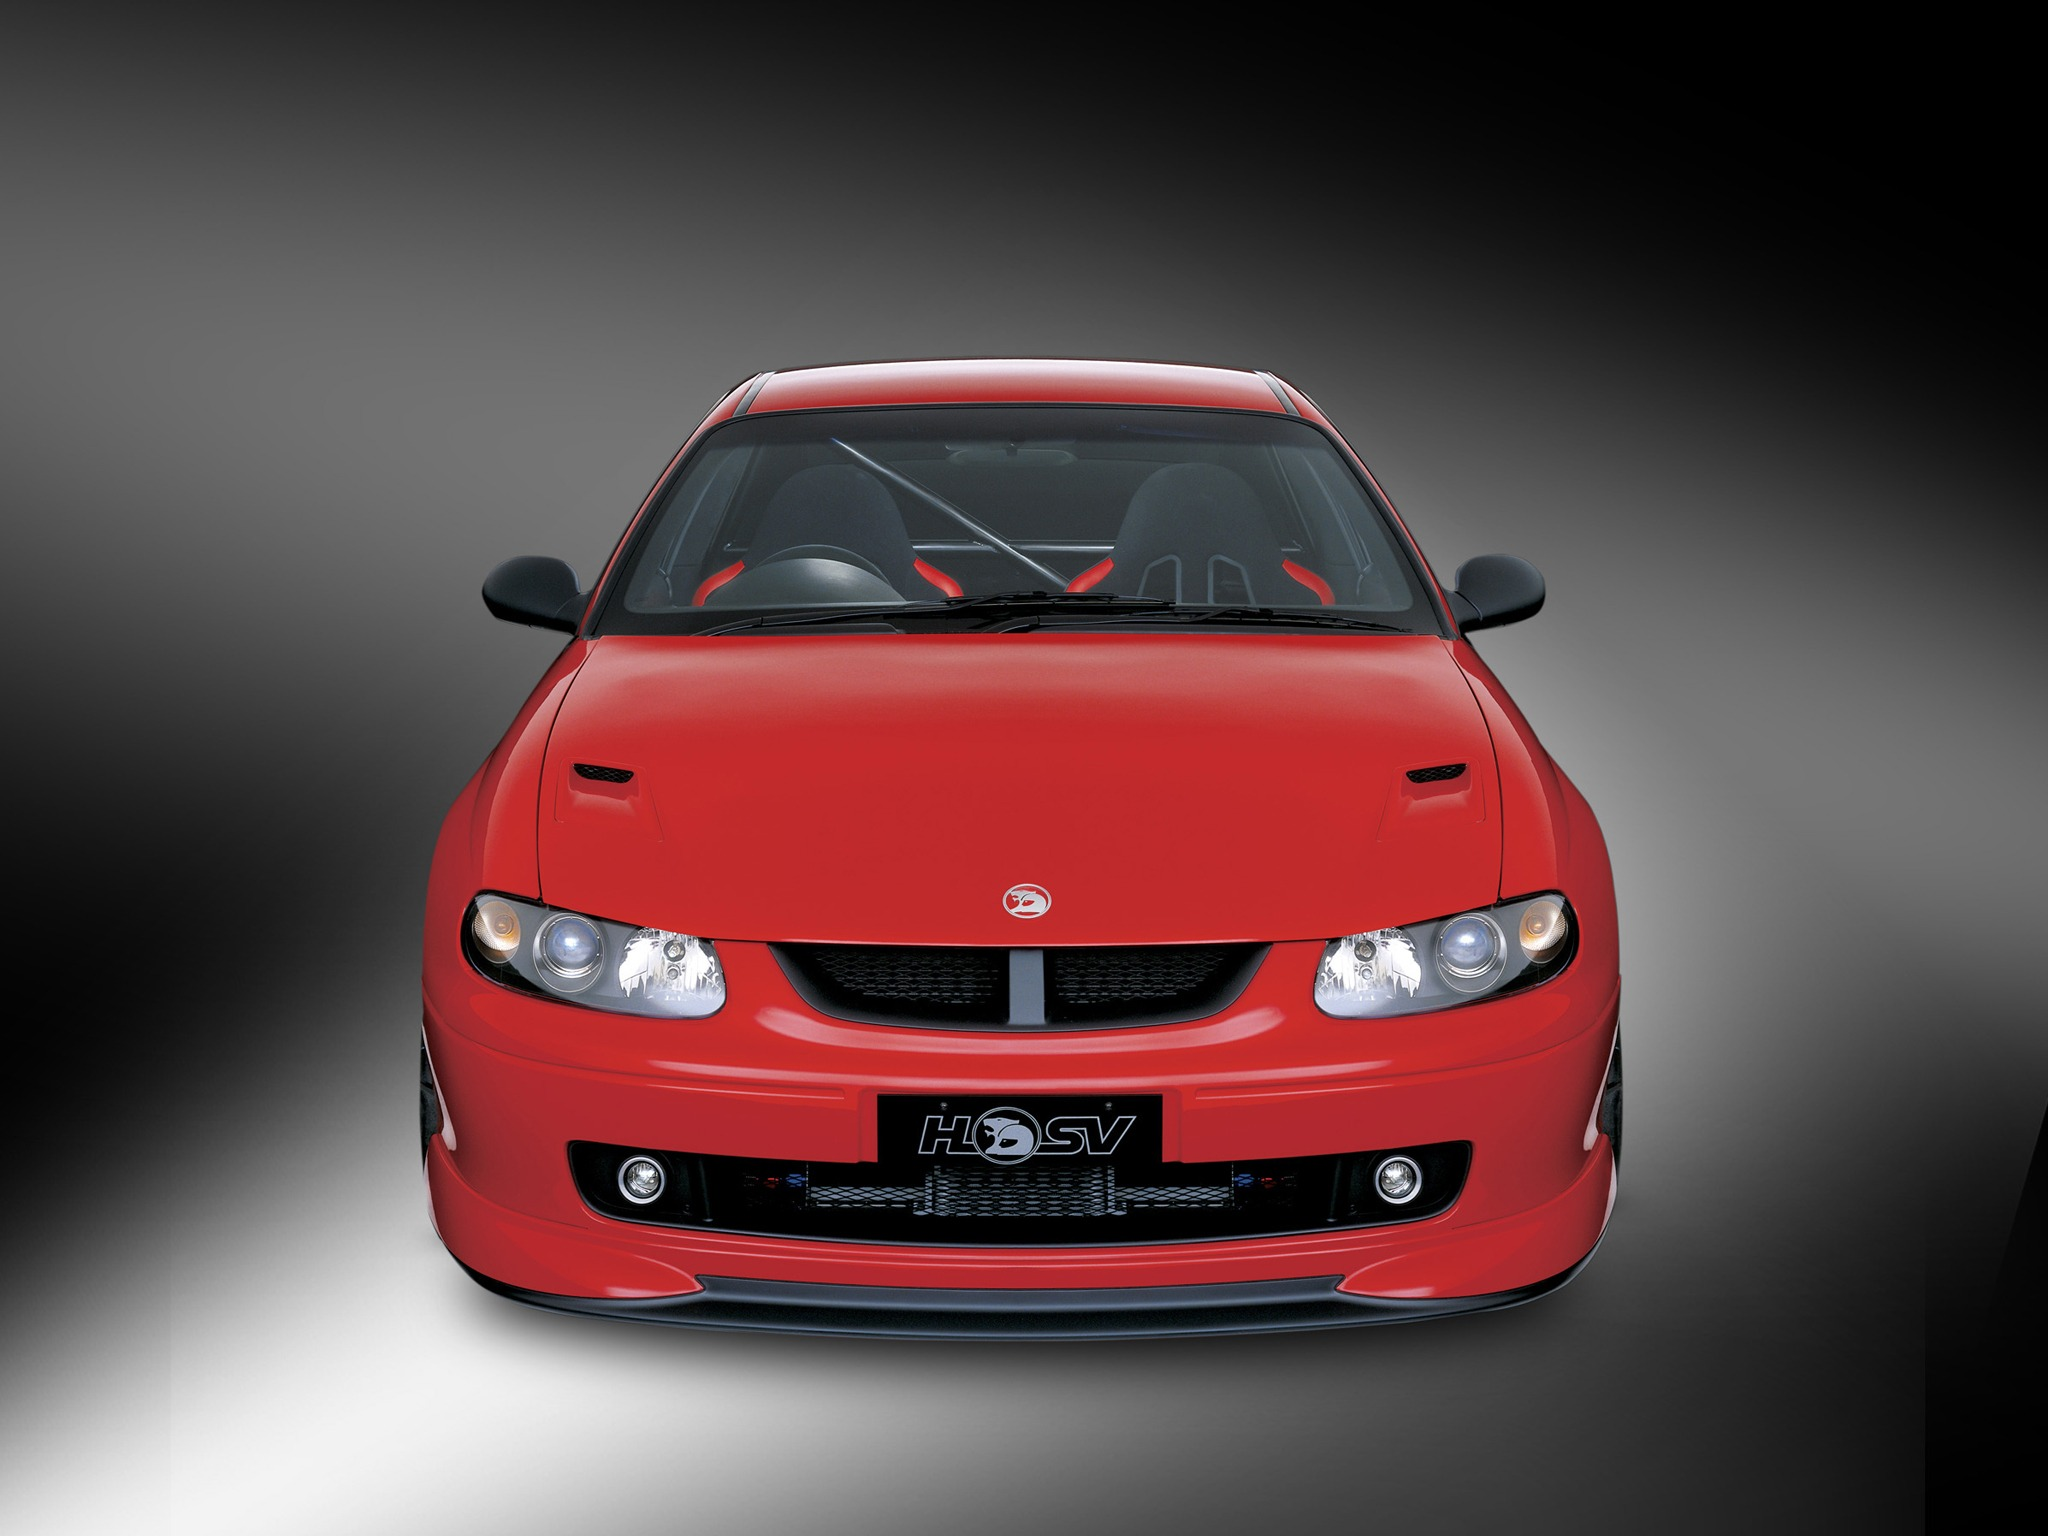 Hsv hrt 427 2002 old concept cars 2002 holden hrt 427 hsv vanachro Choice Image